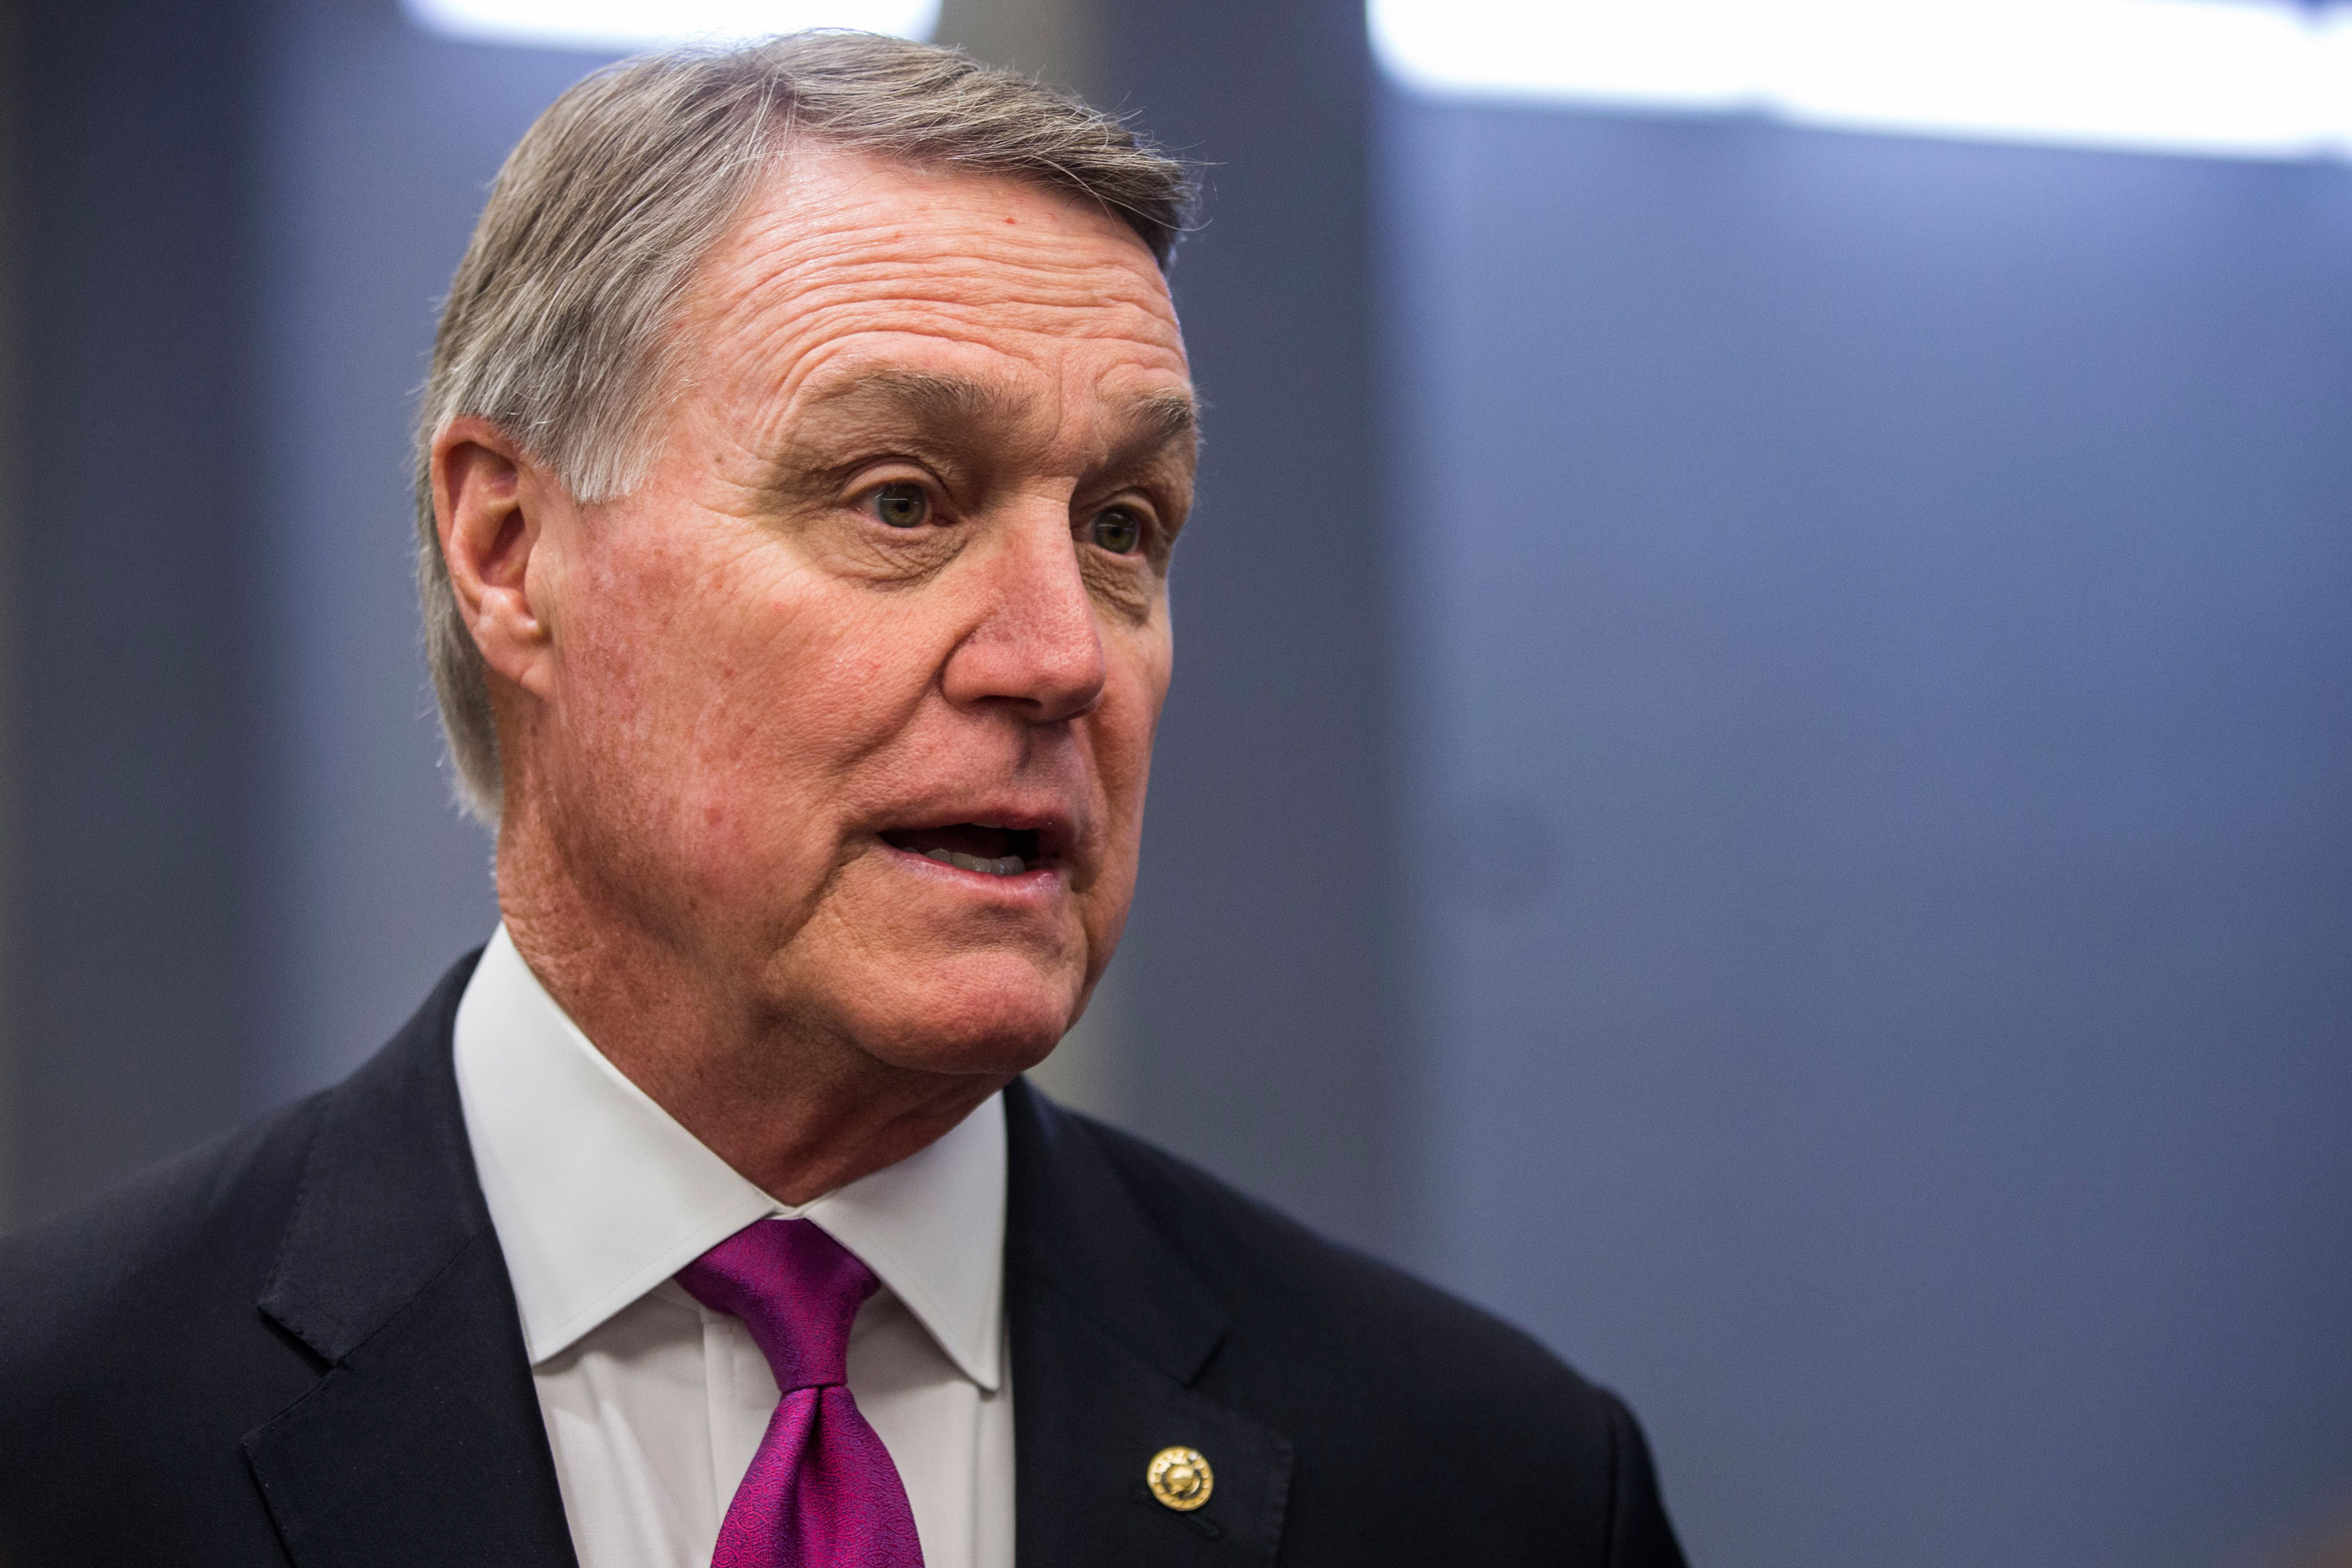 New York Times: Justice Department probed Georgia Sen. David Perdue's stock sales at beginning of pandemic